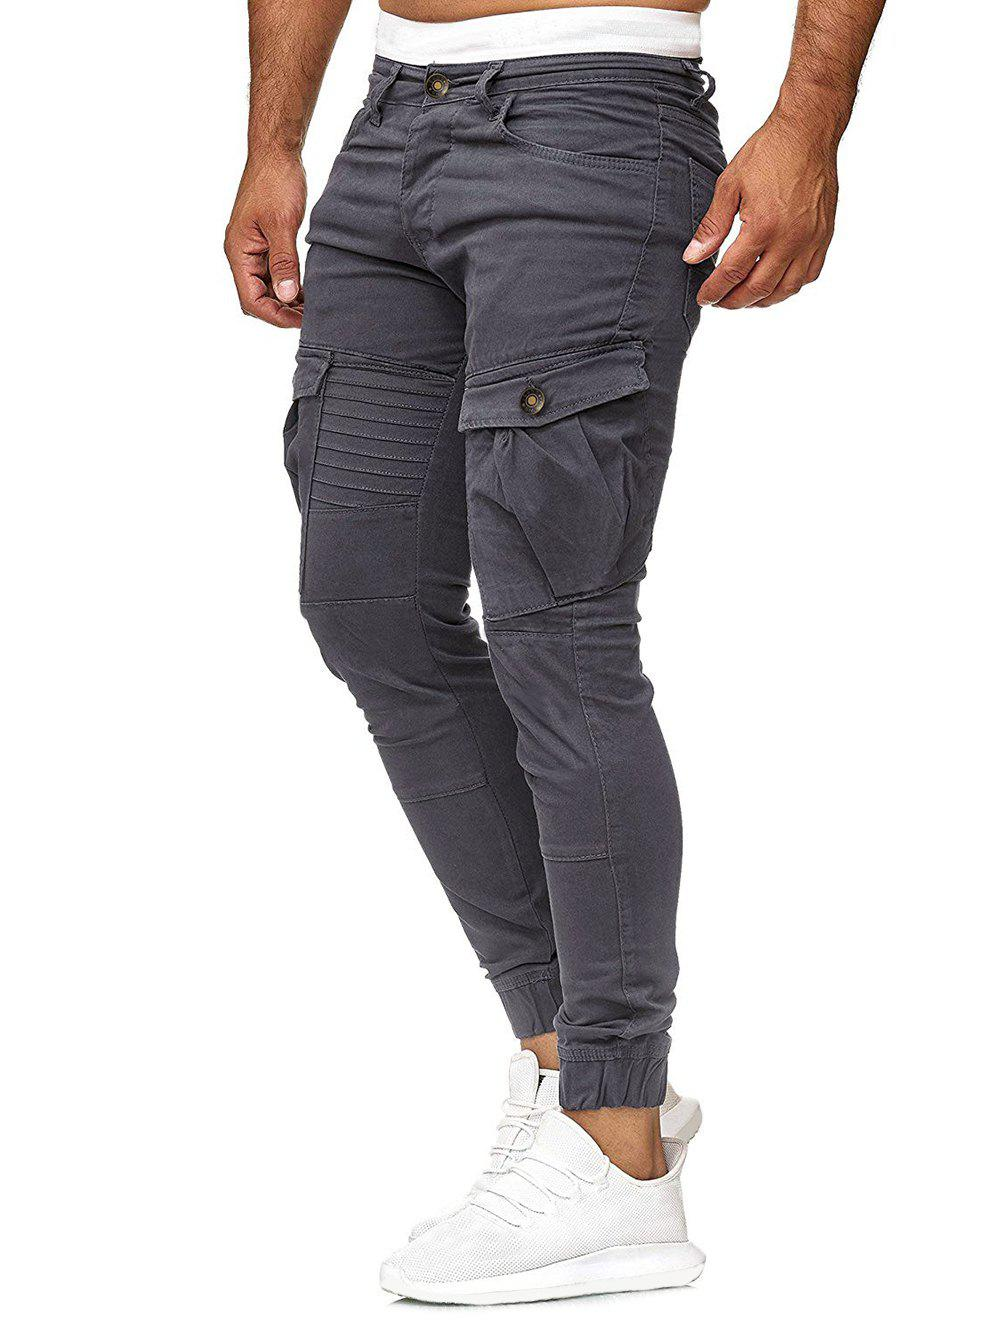 Solid Color Pleated Flap Pocket Casual Jogger Pants - LIGHT GRAY M